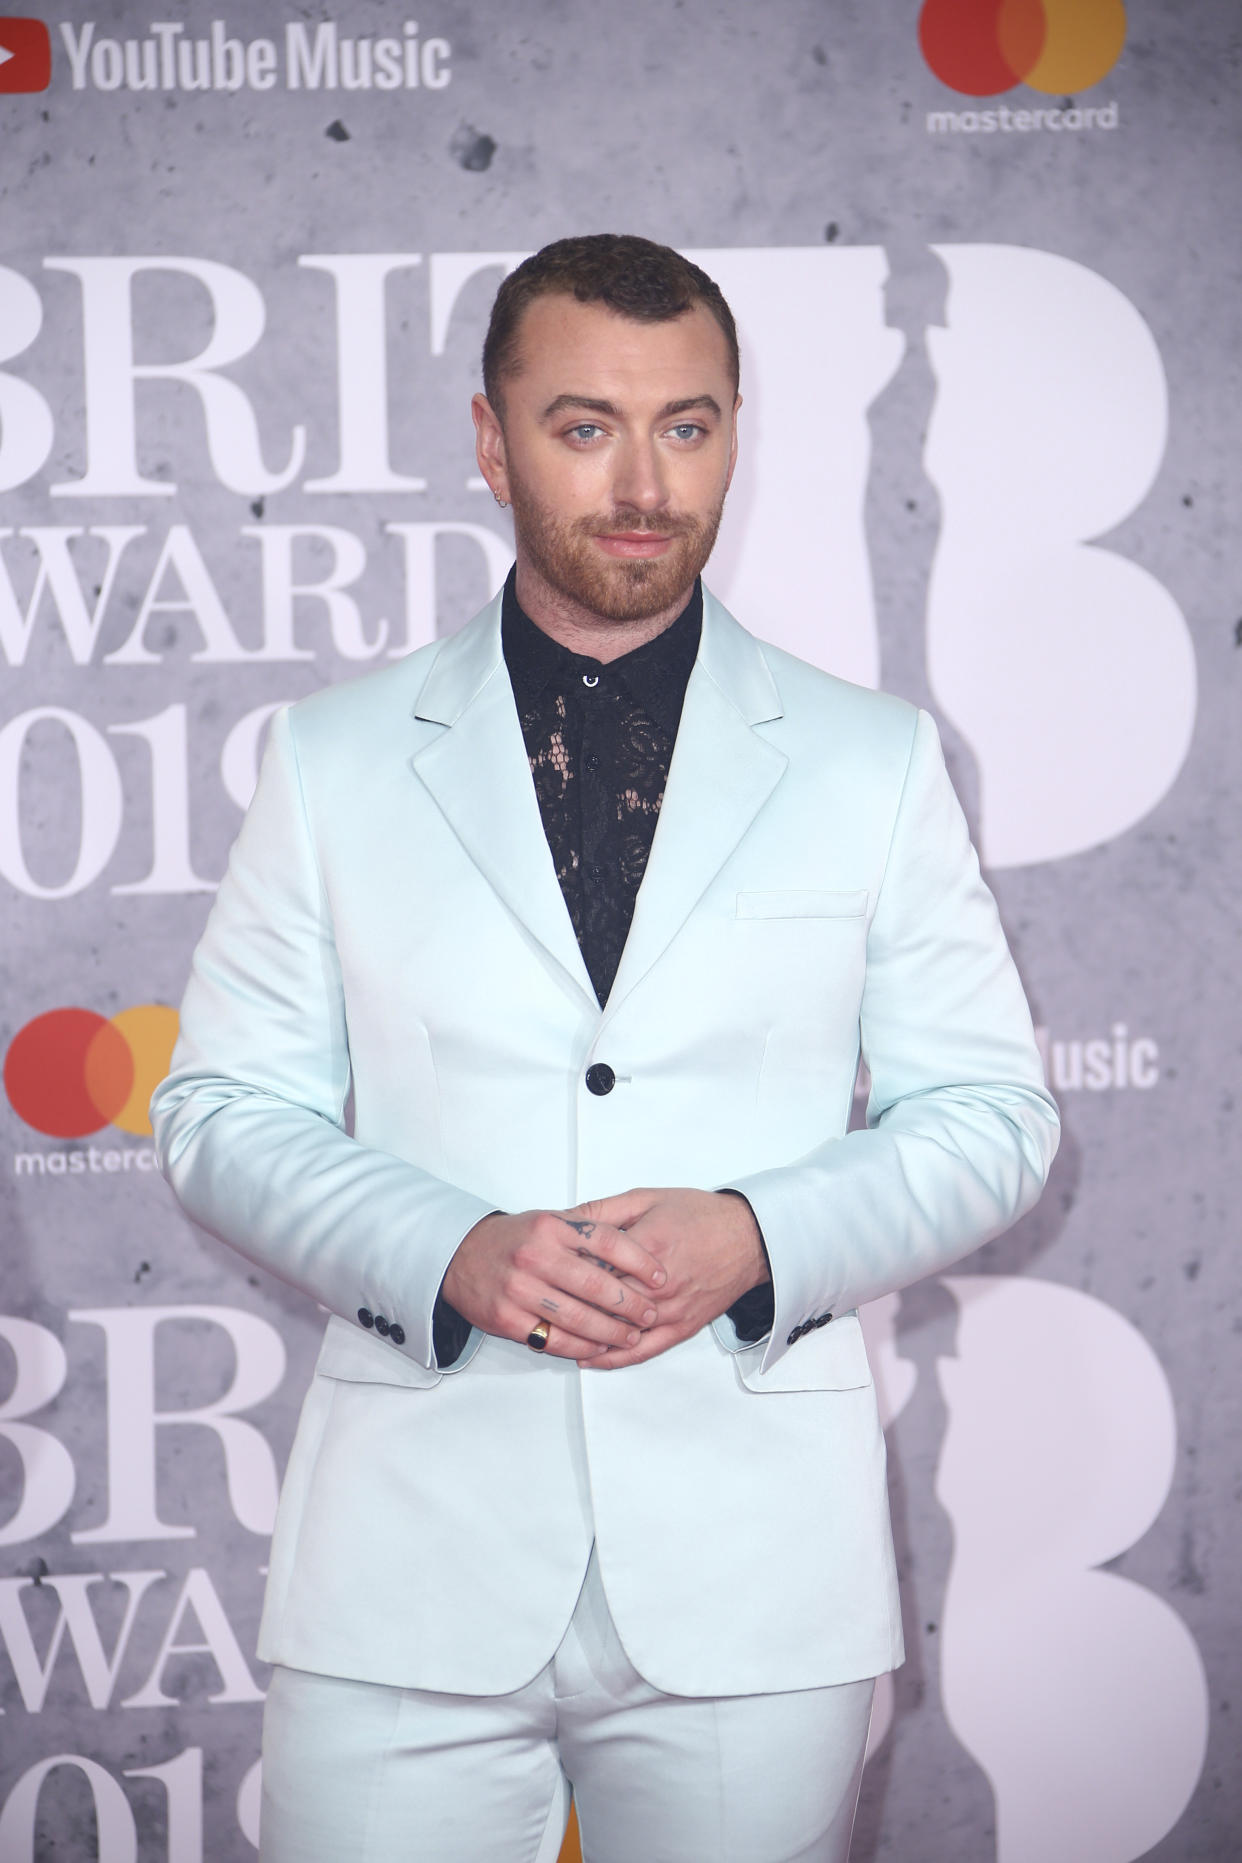 Singer Sam Smith poses for photographers upon arrival at the Brit Awards in London, Wednesday, Feb. 20, 2019. (Photo by Joel C Ryan/Invision/AP)